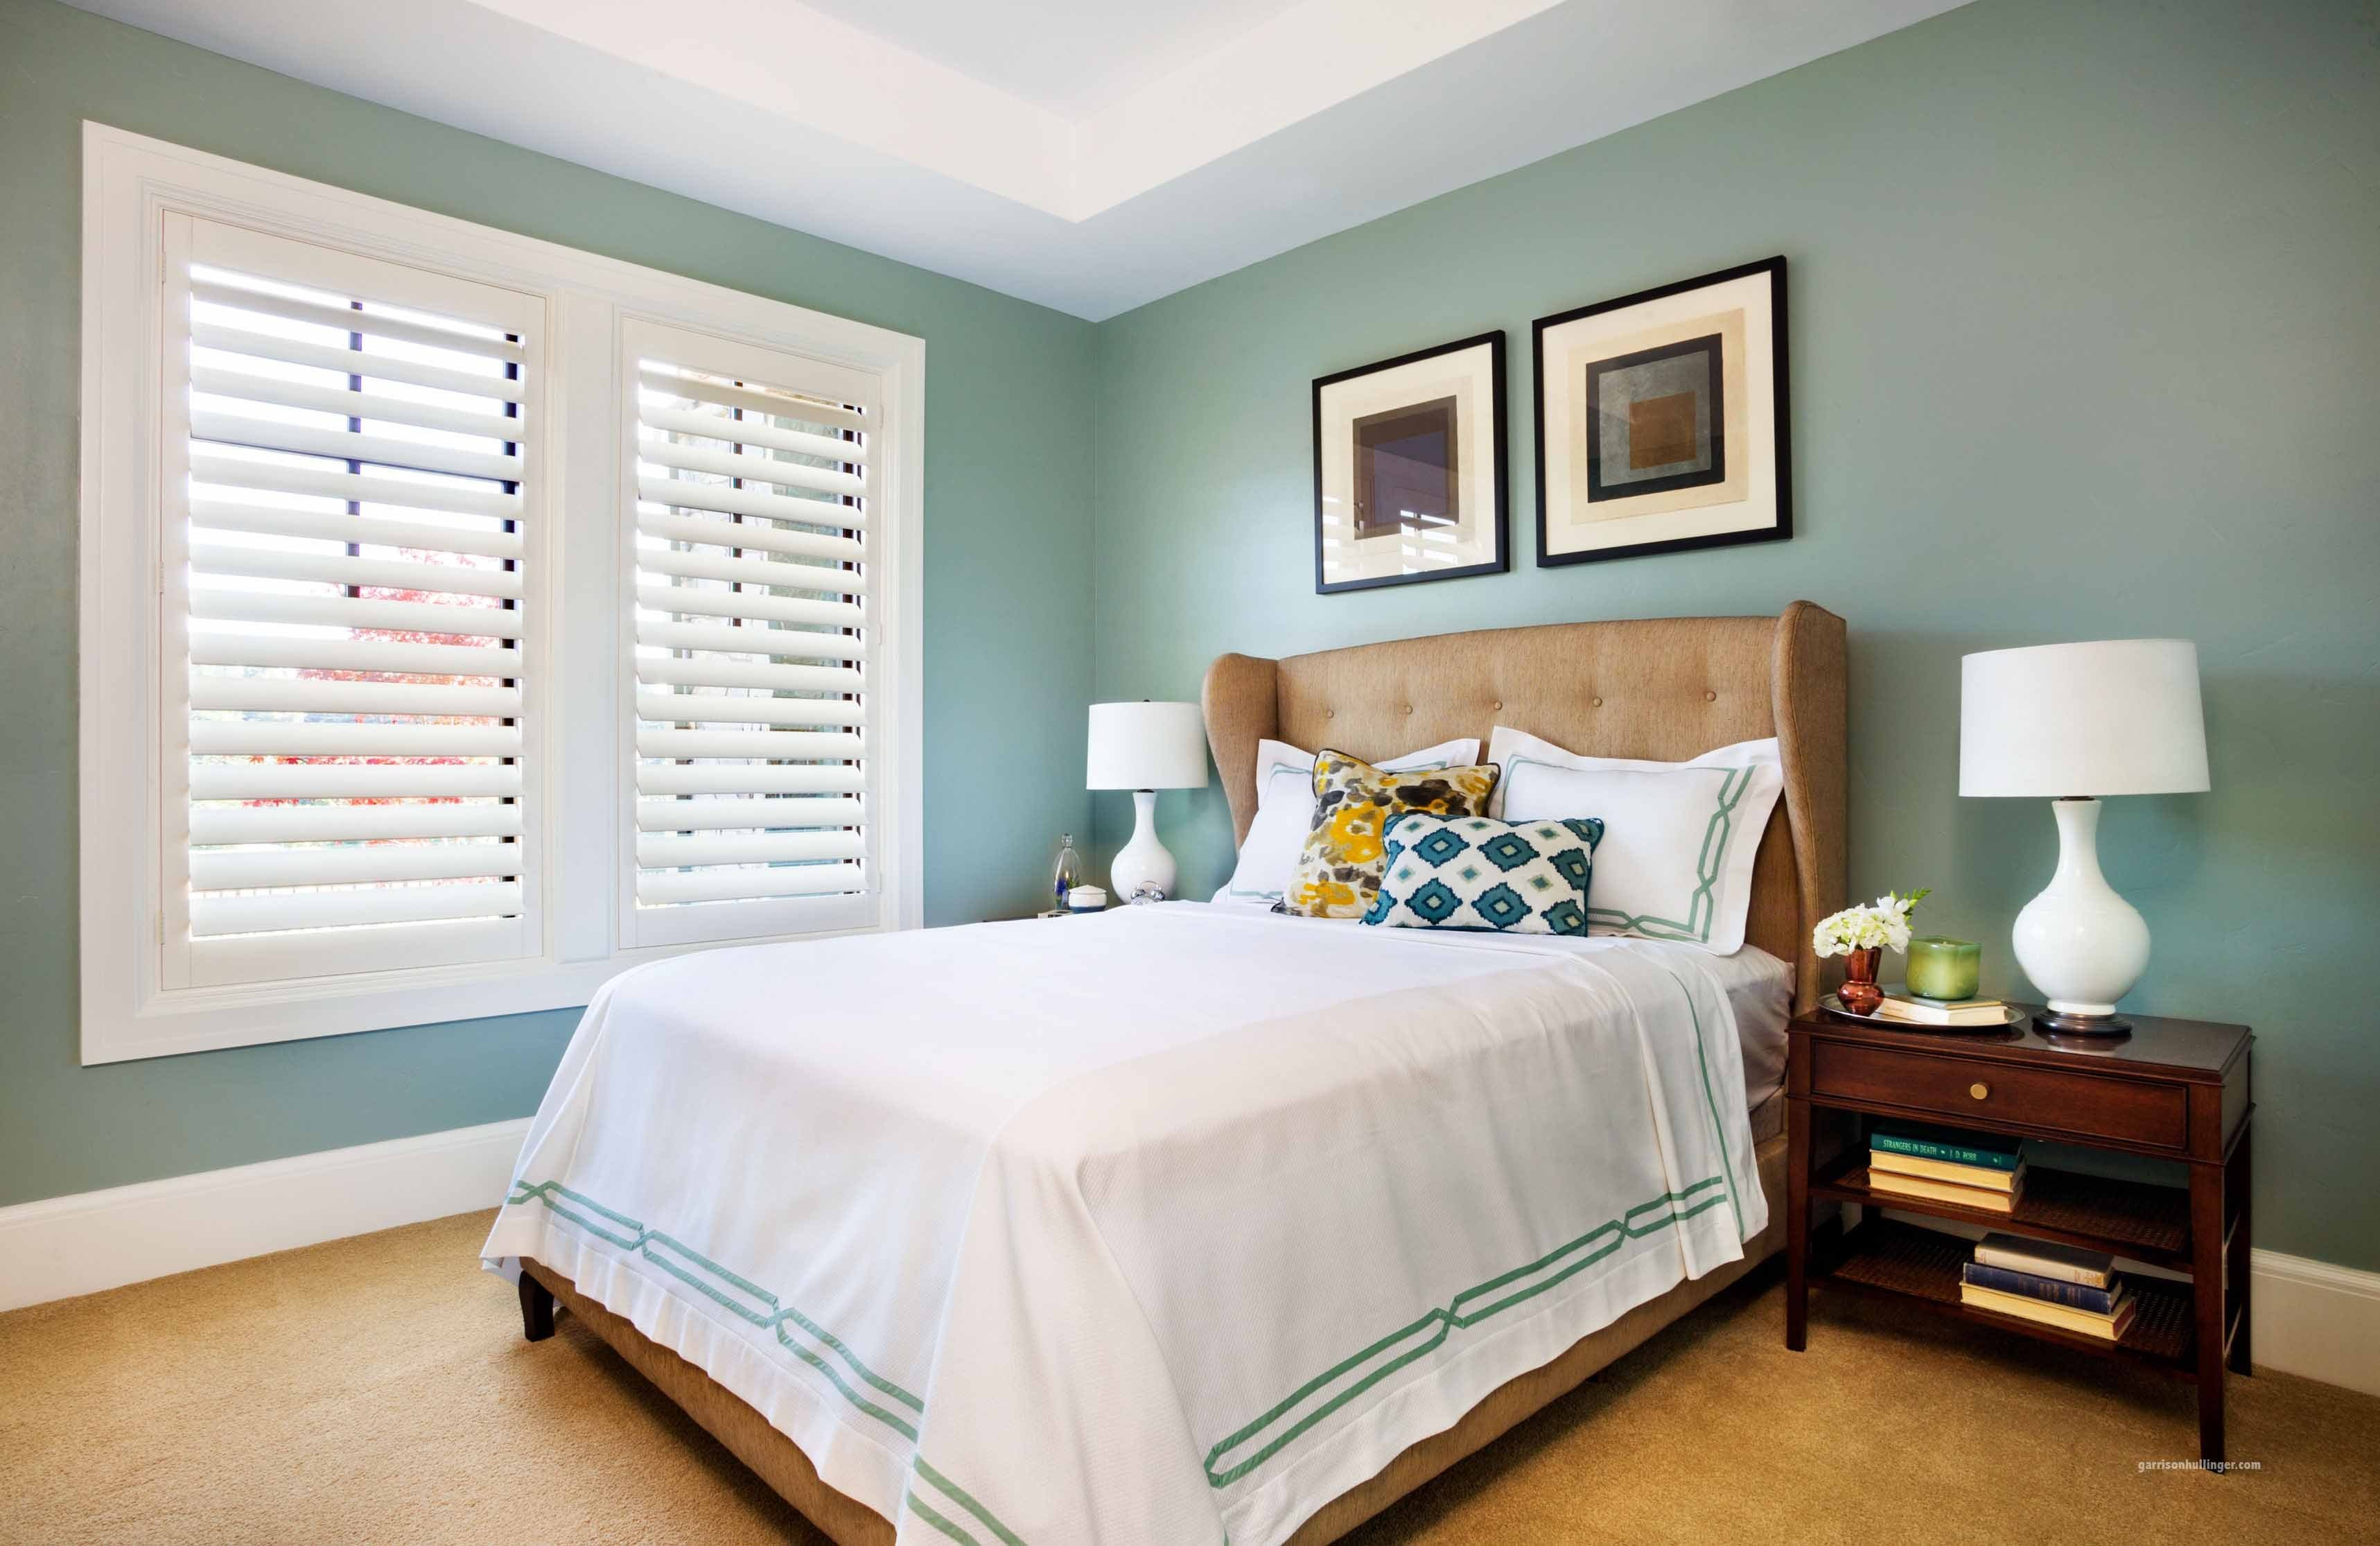 Best Guest Room Decorating Guest Room Wall Decor Decorating With Pictures